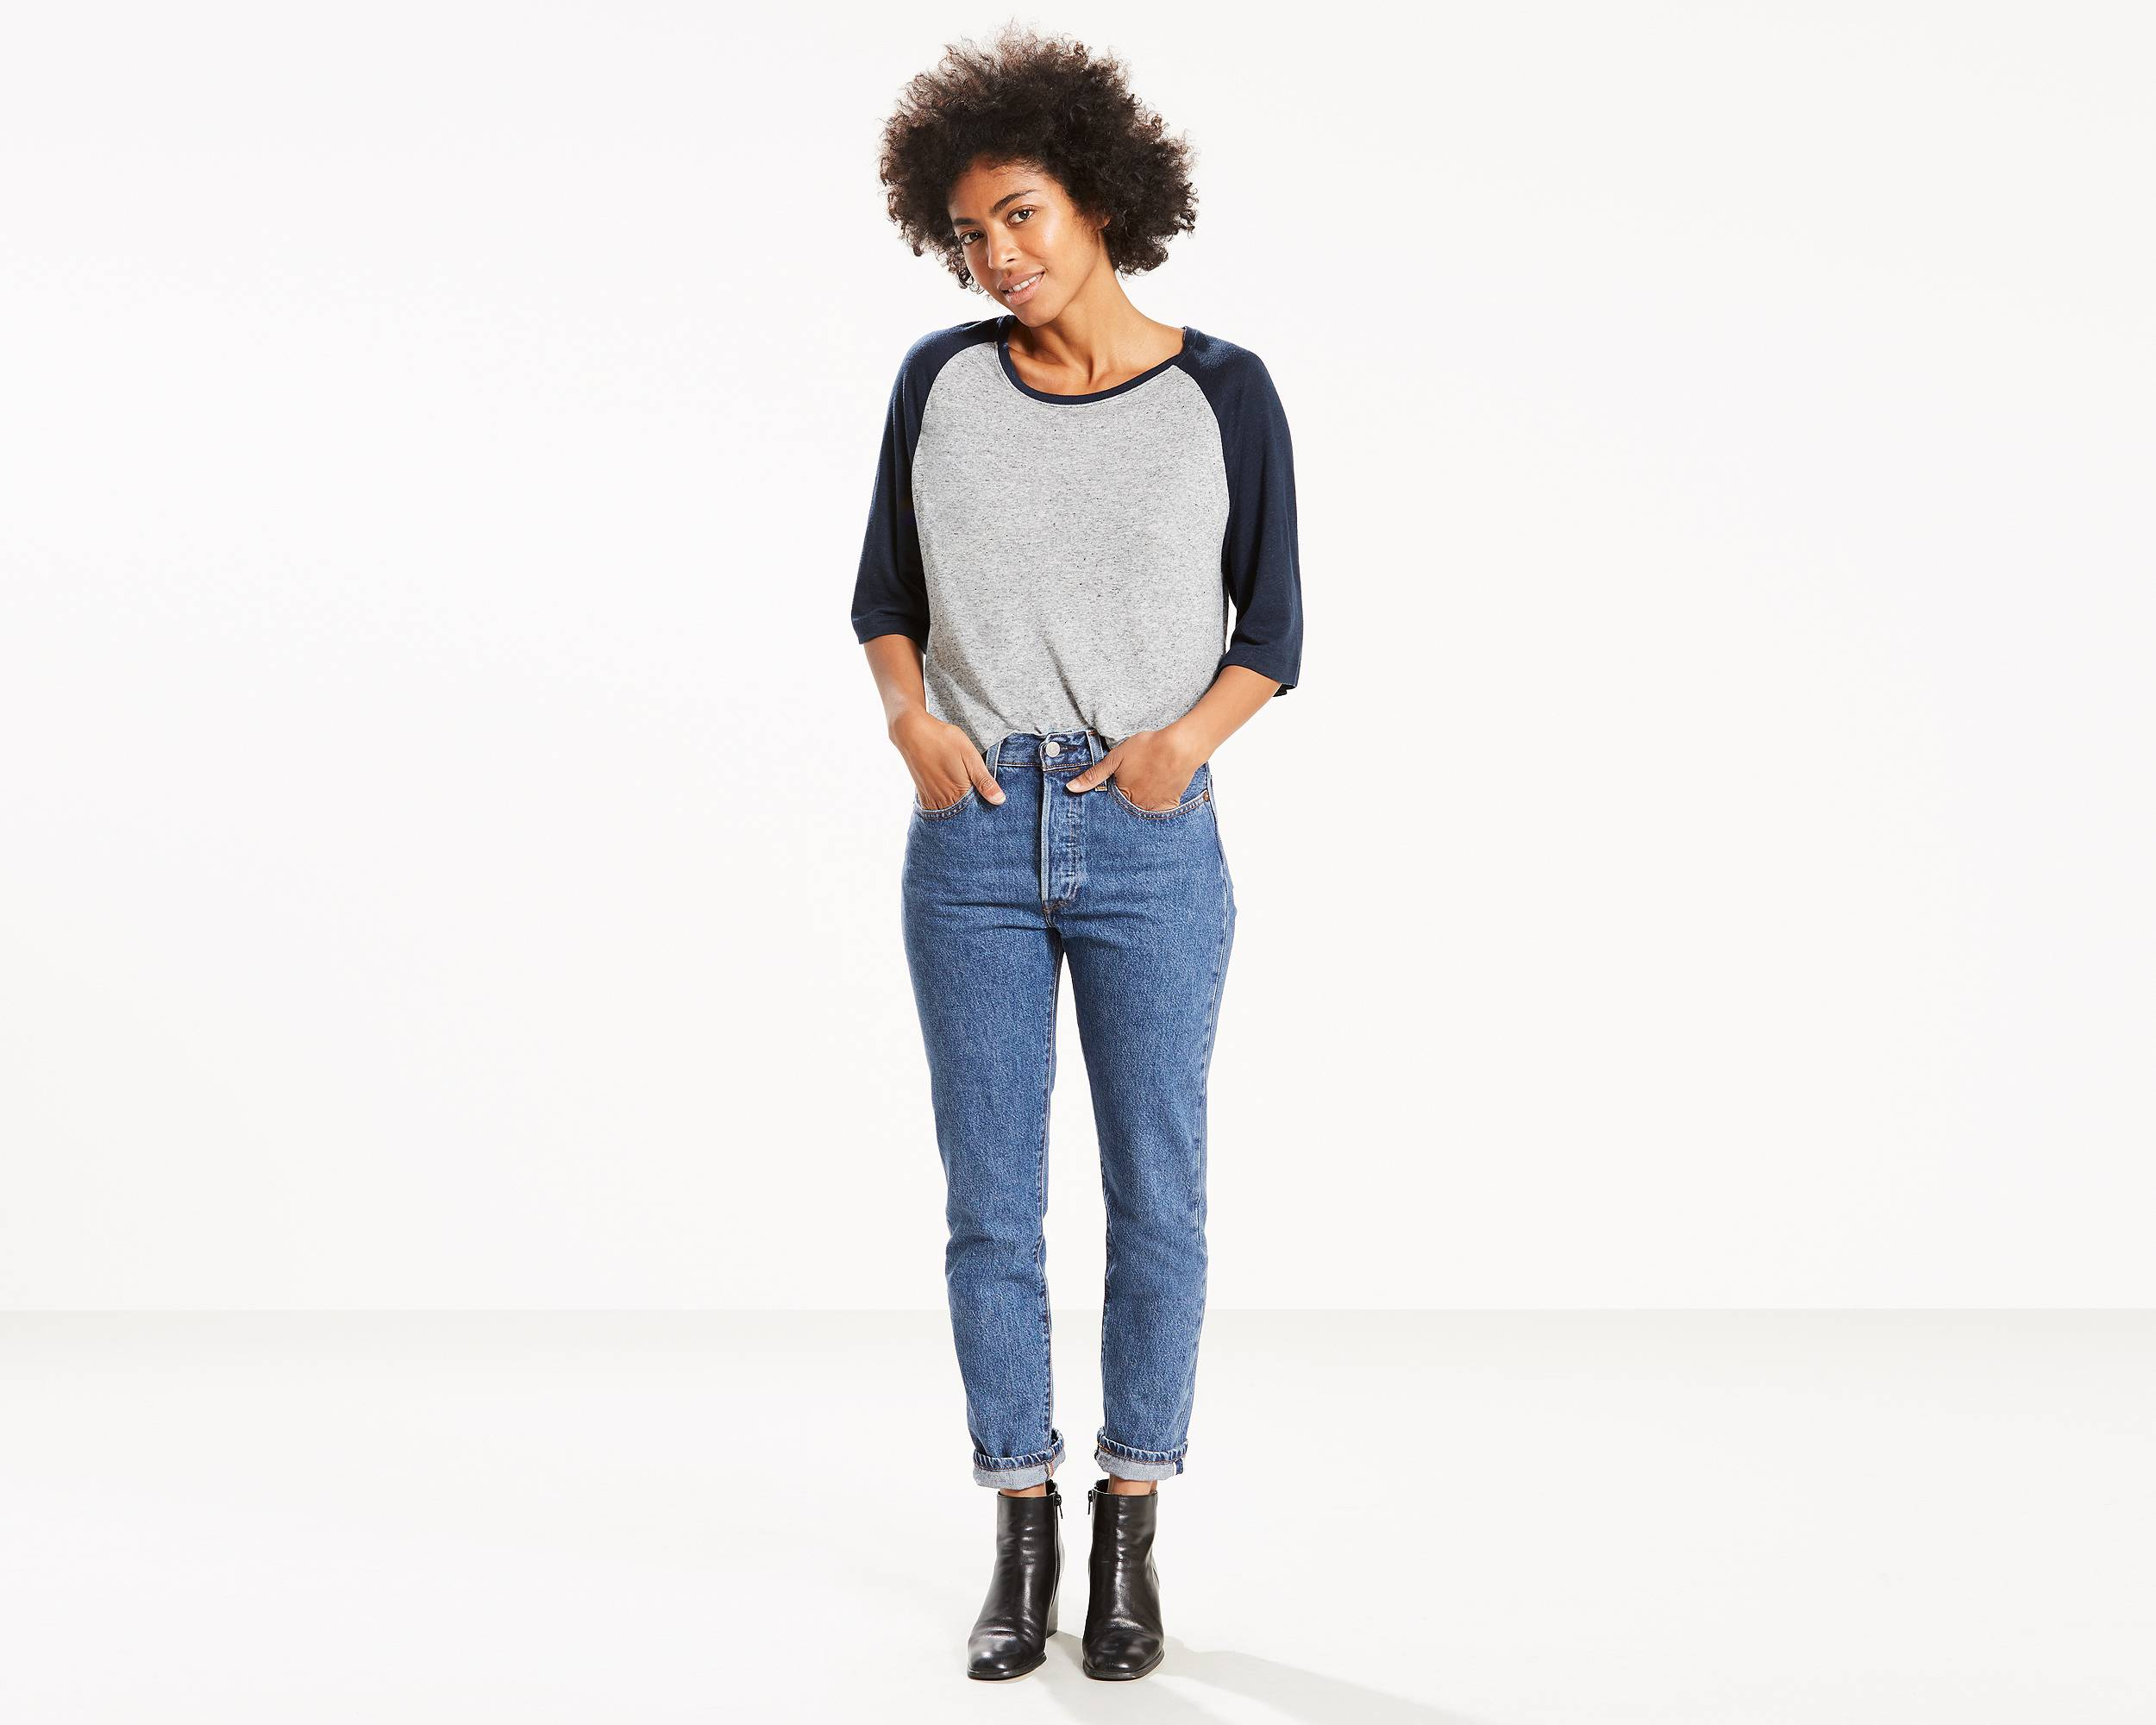 levis lady style clothing - photo #35